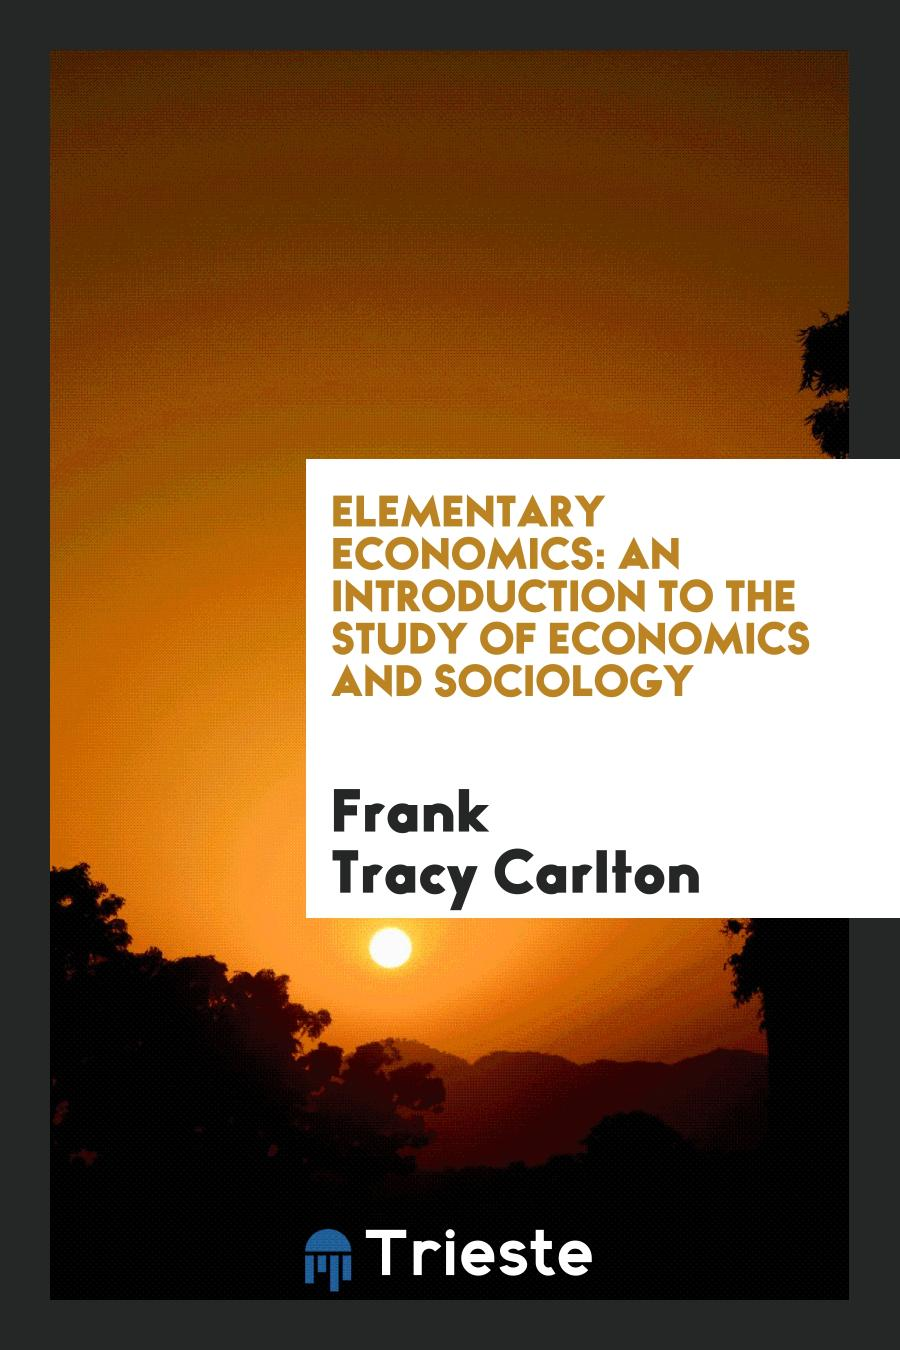 Elementary Economics: An Introduction to the Study of Economics and Sociology